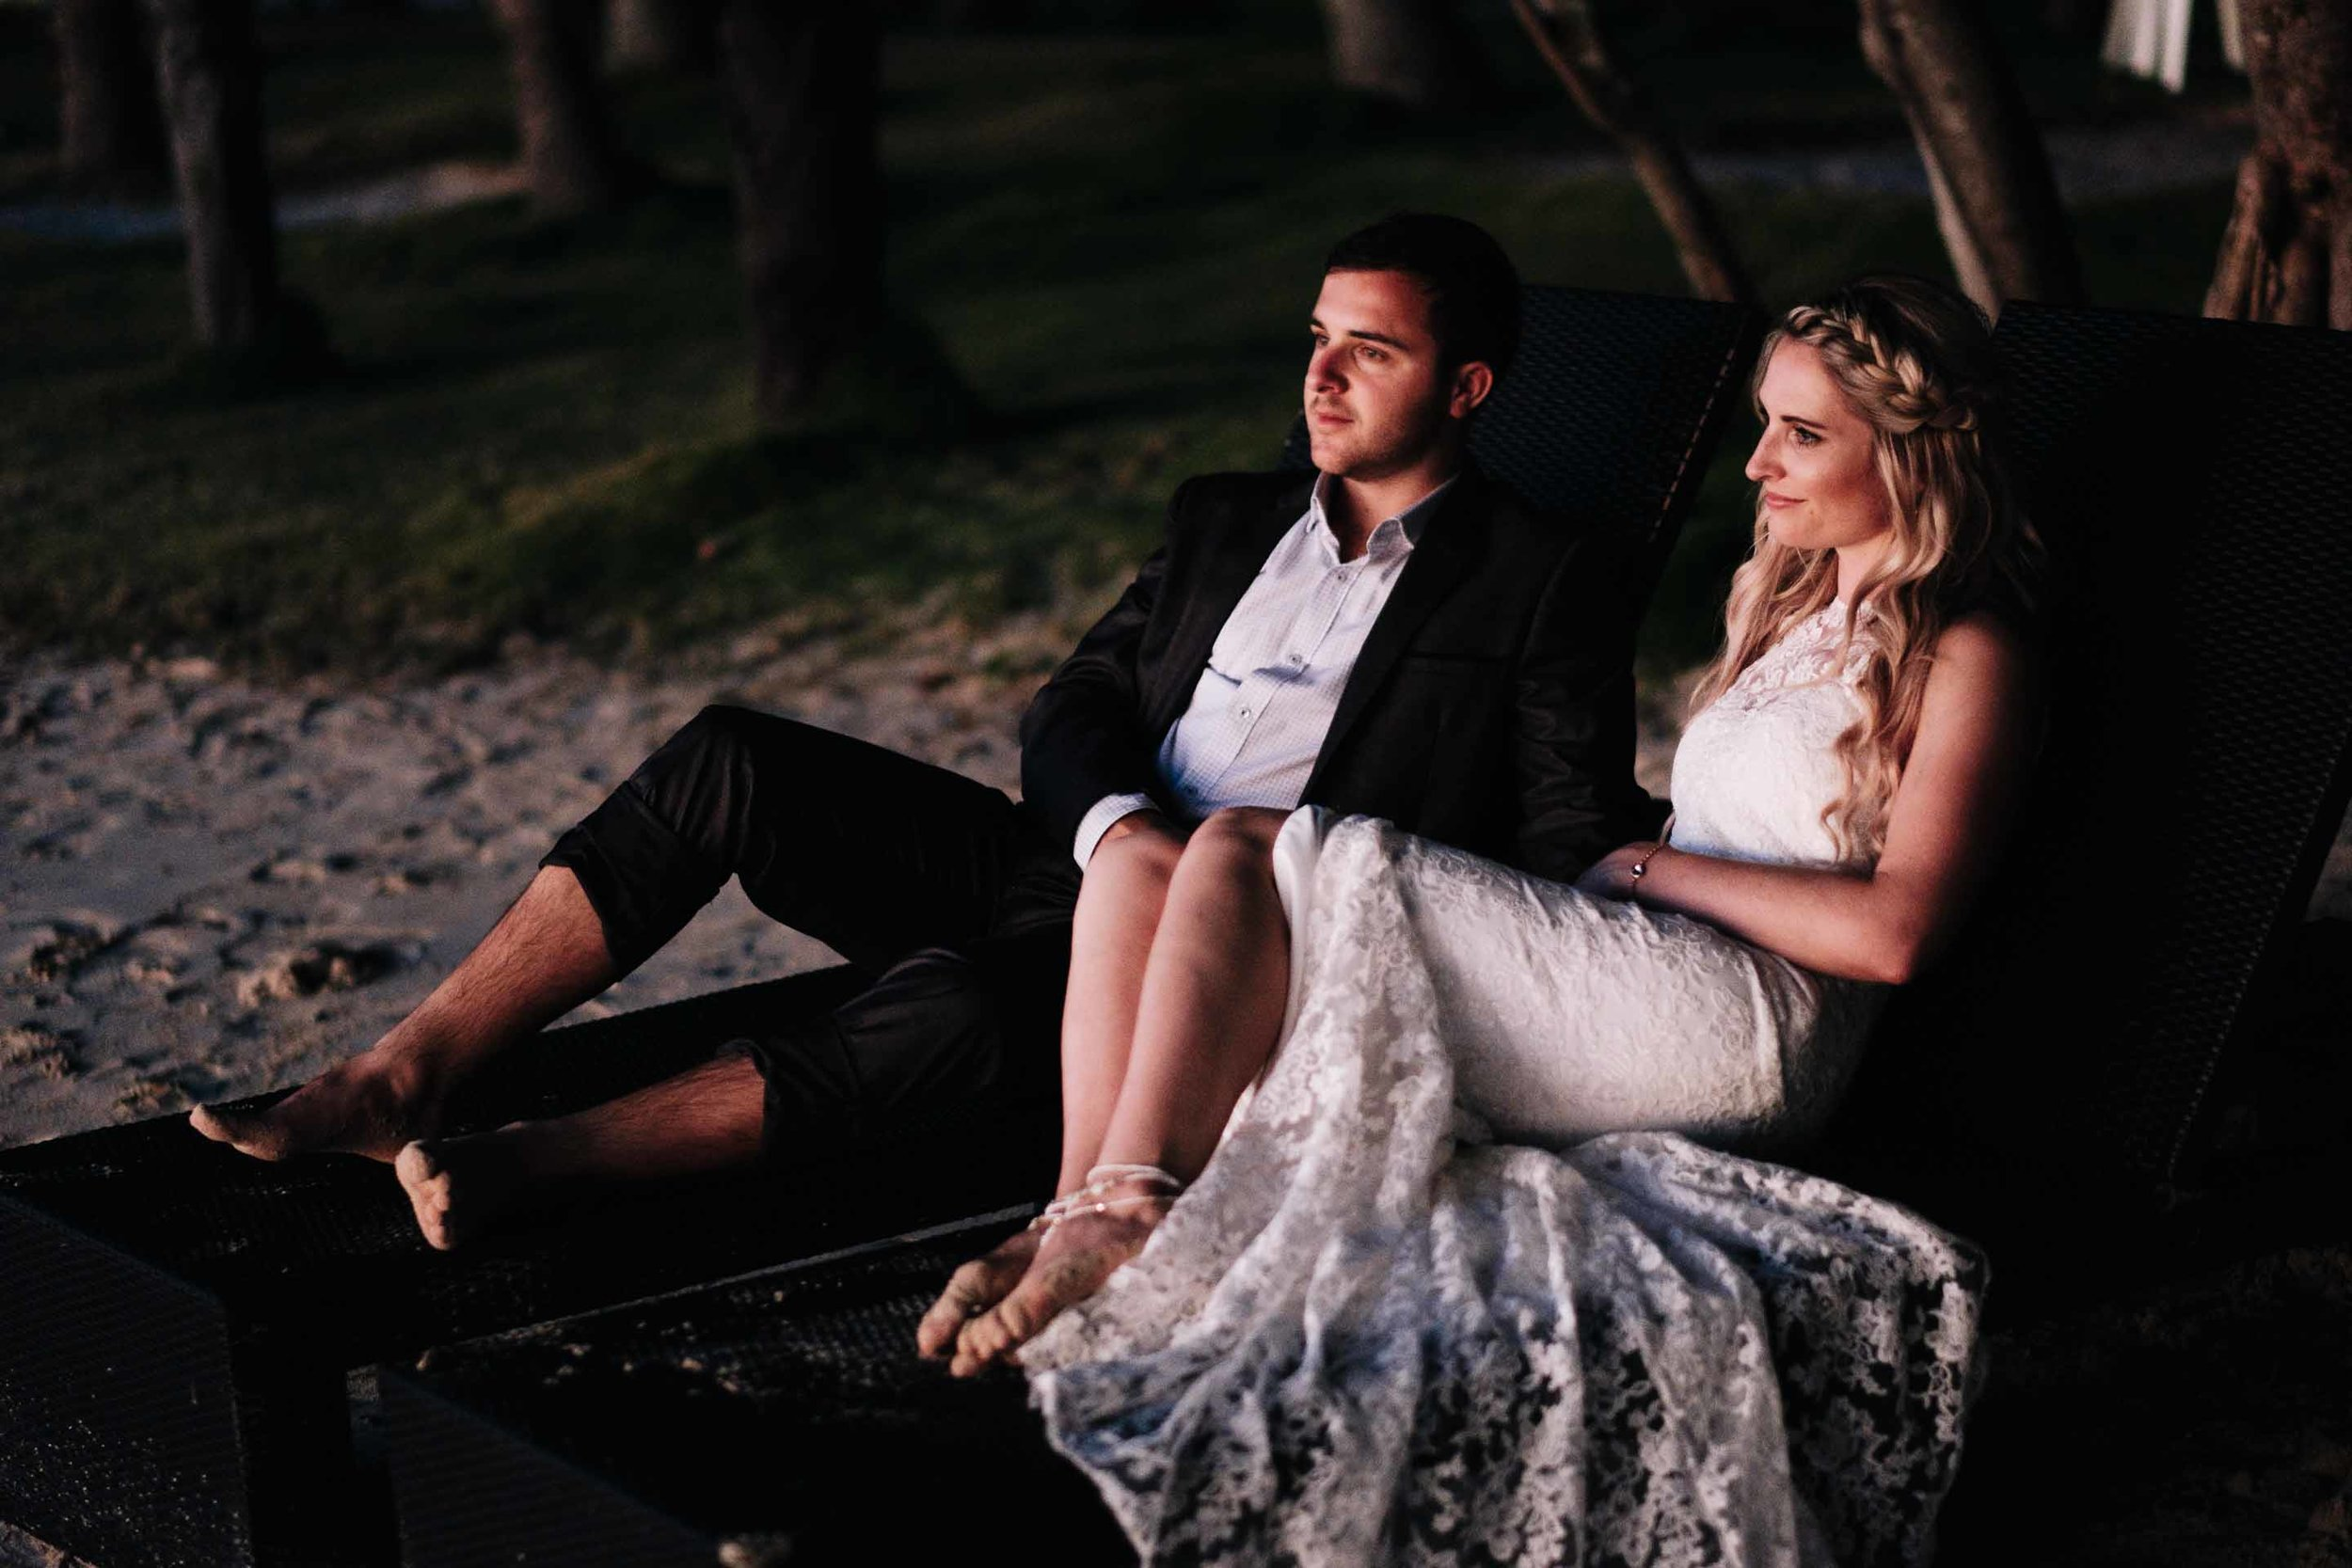 the bride and groom side by side on sun loungers as they wait for photos at sunset